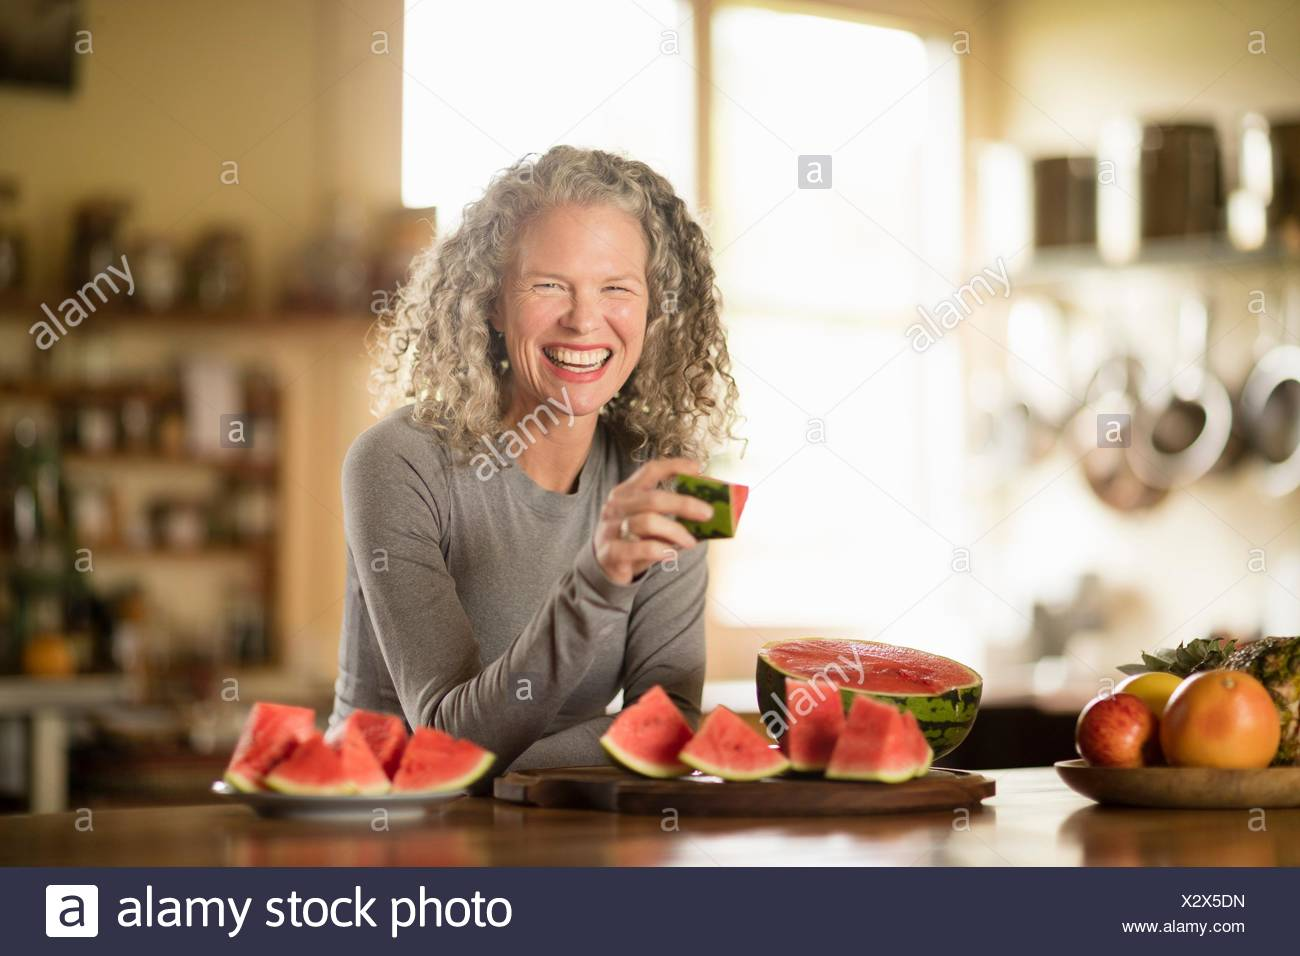 Portrait of young woman eating watermelon in kitchen Photo Stock